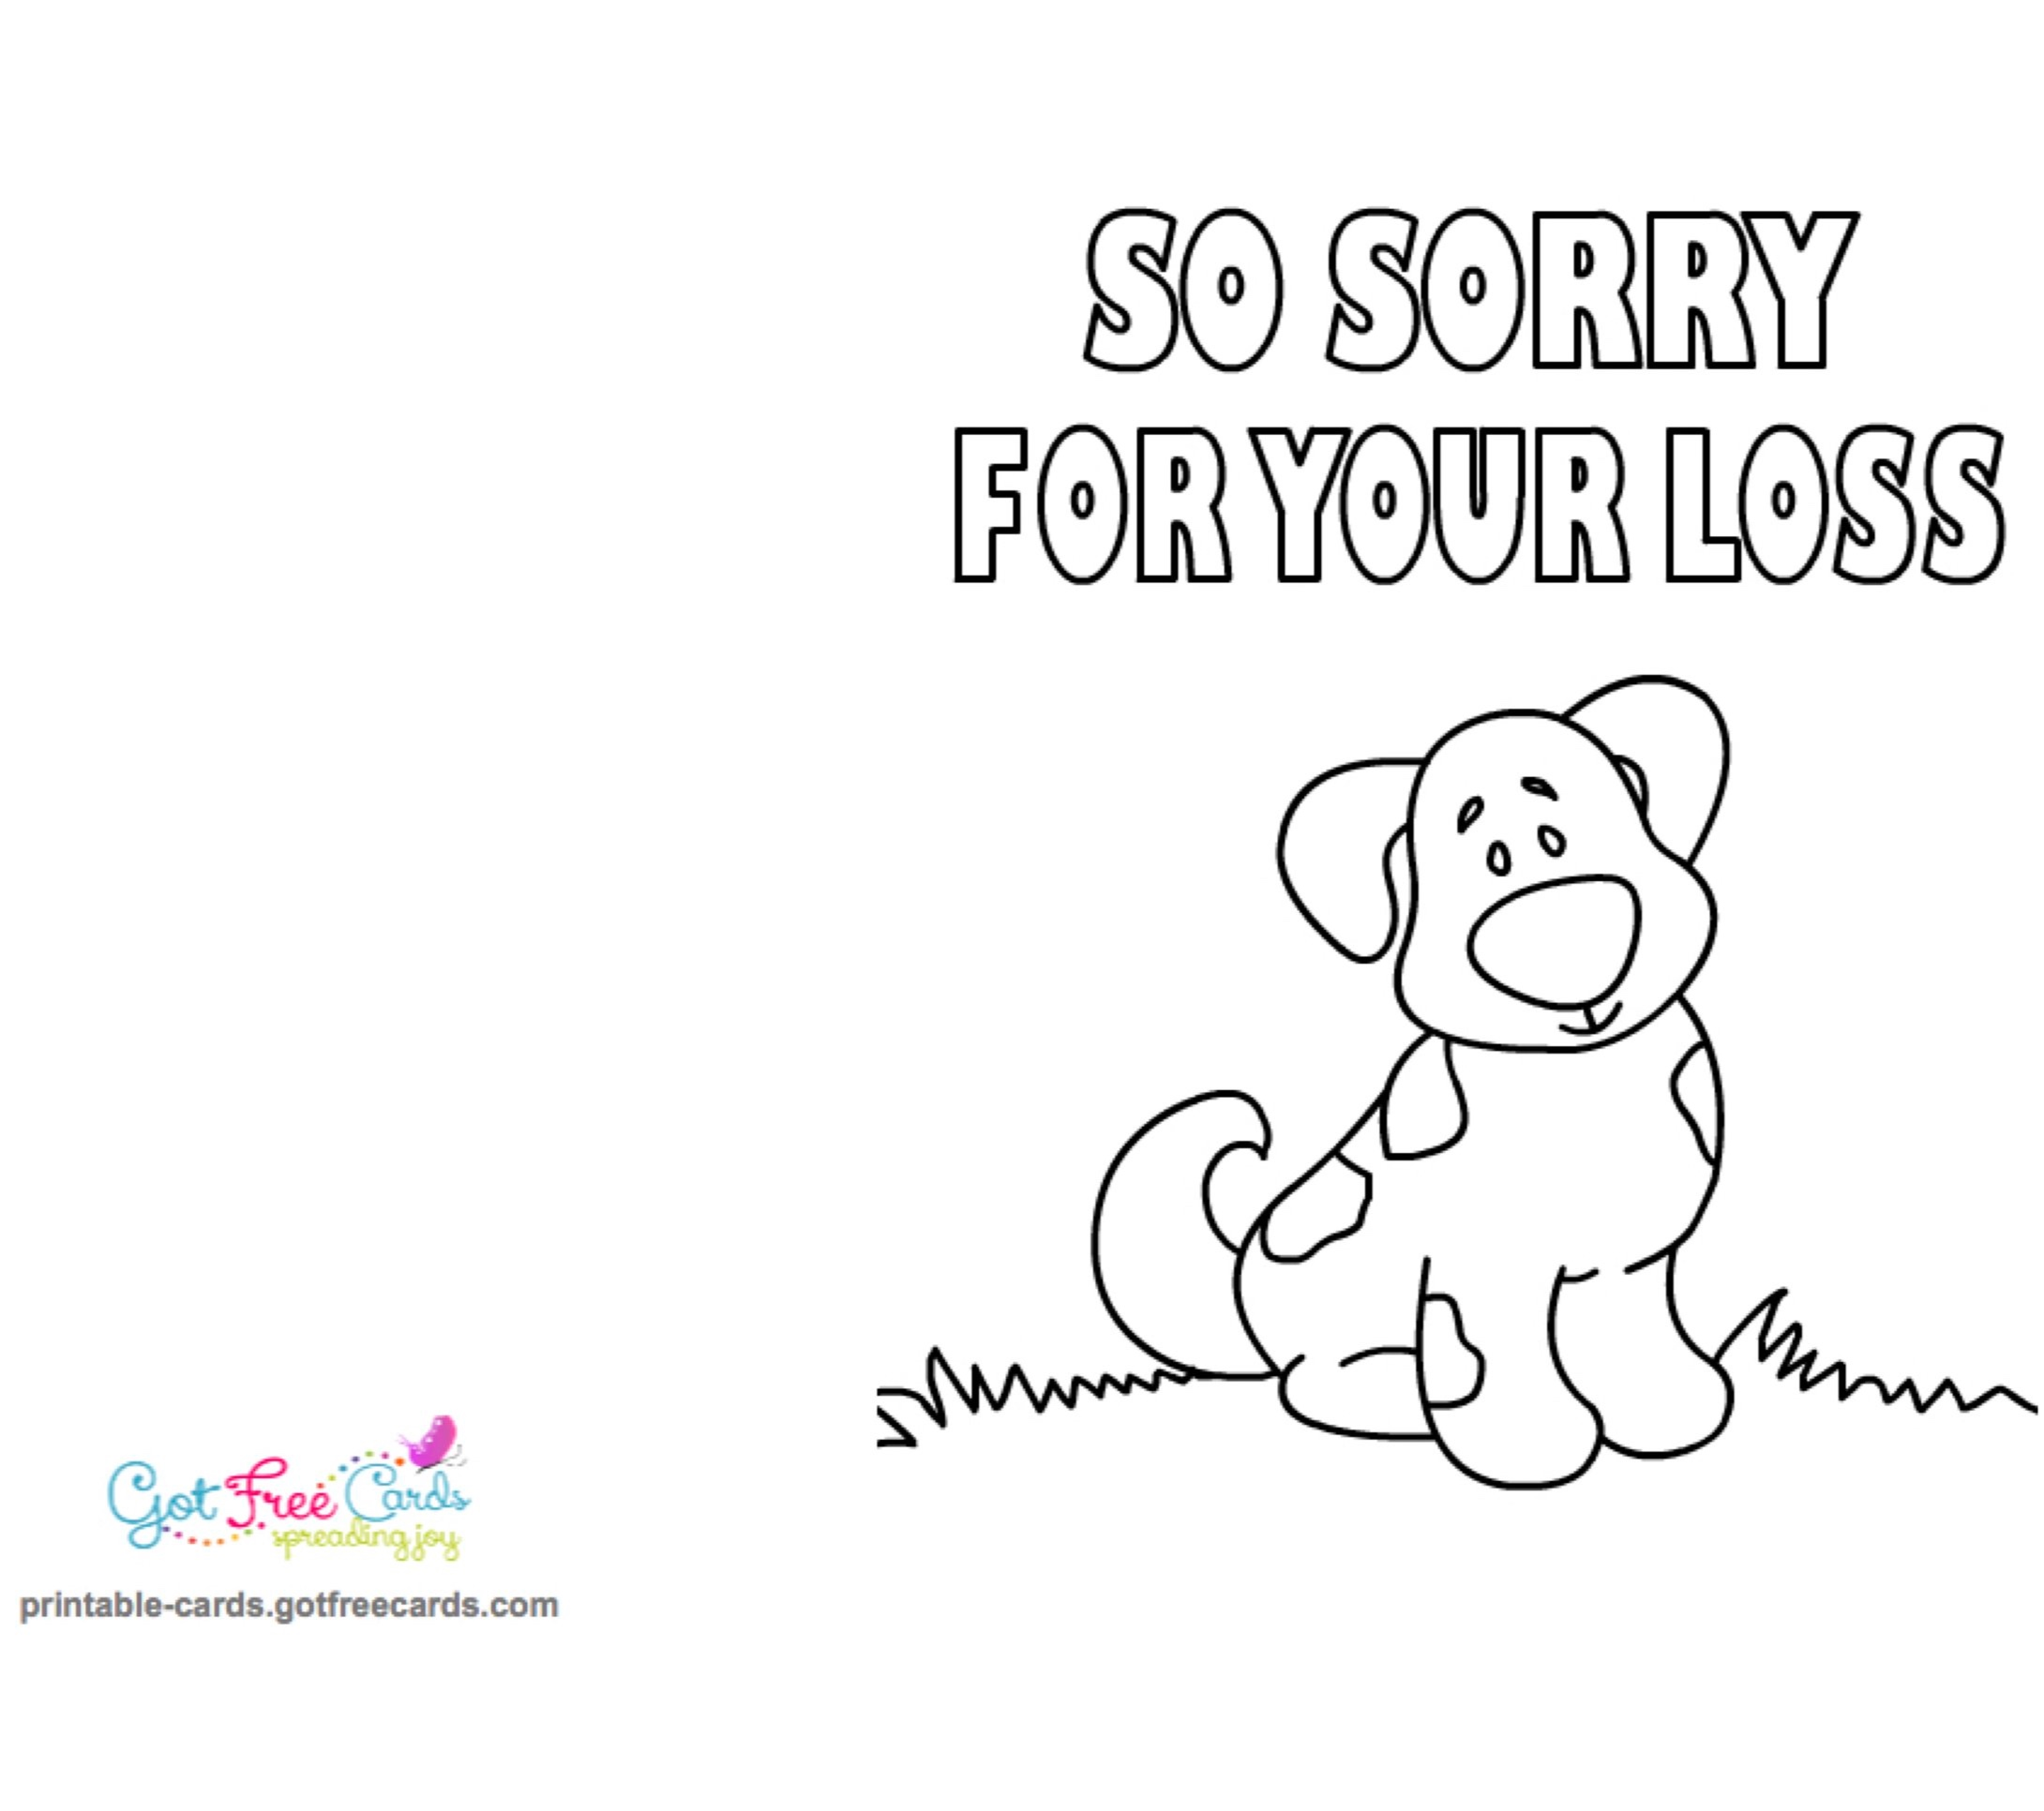 picture about Sorry for Your Loss Printable Cards named Very little Fingers Can- Provide - Easy Assistance: Dog Sympathy Messages